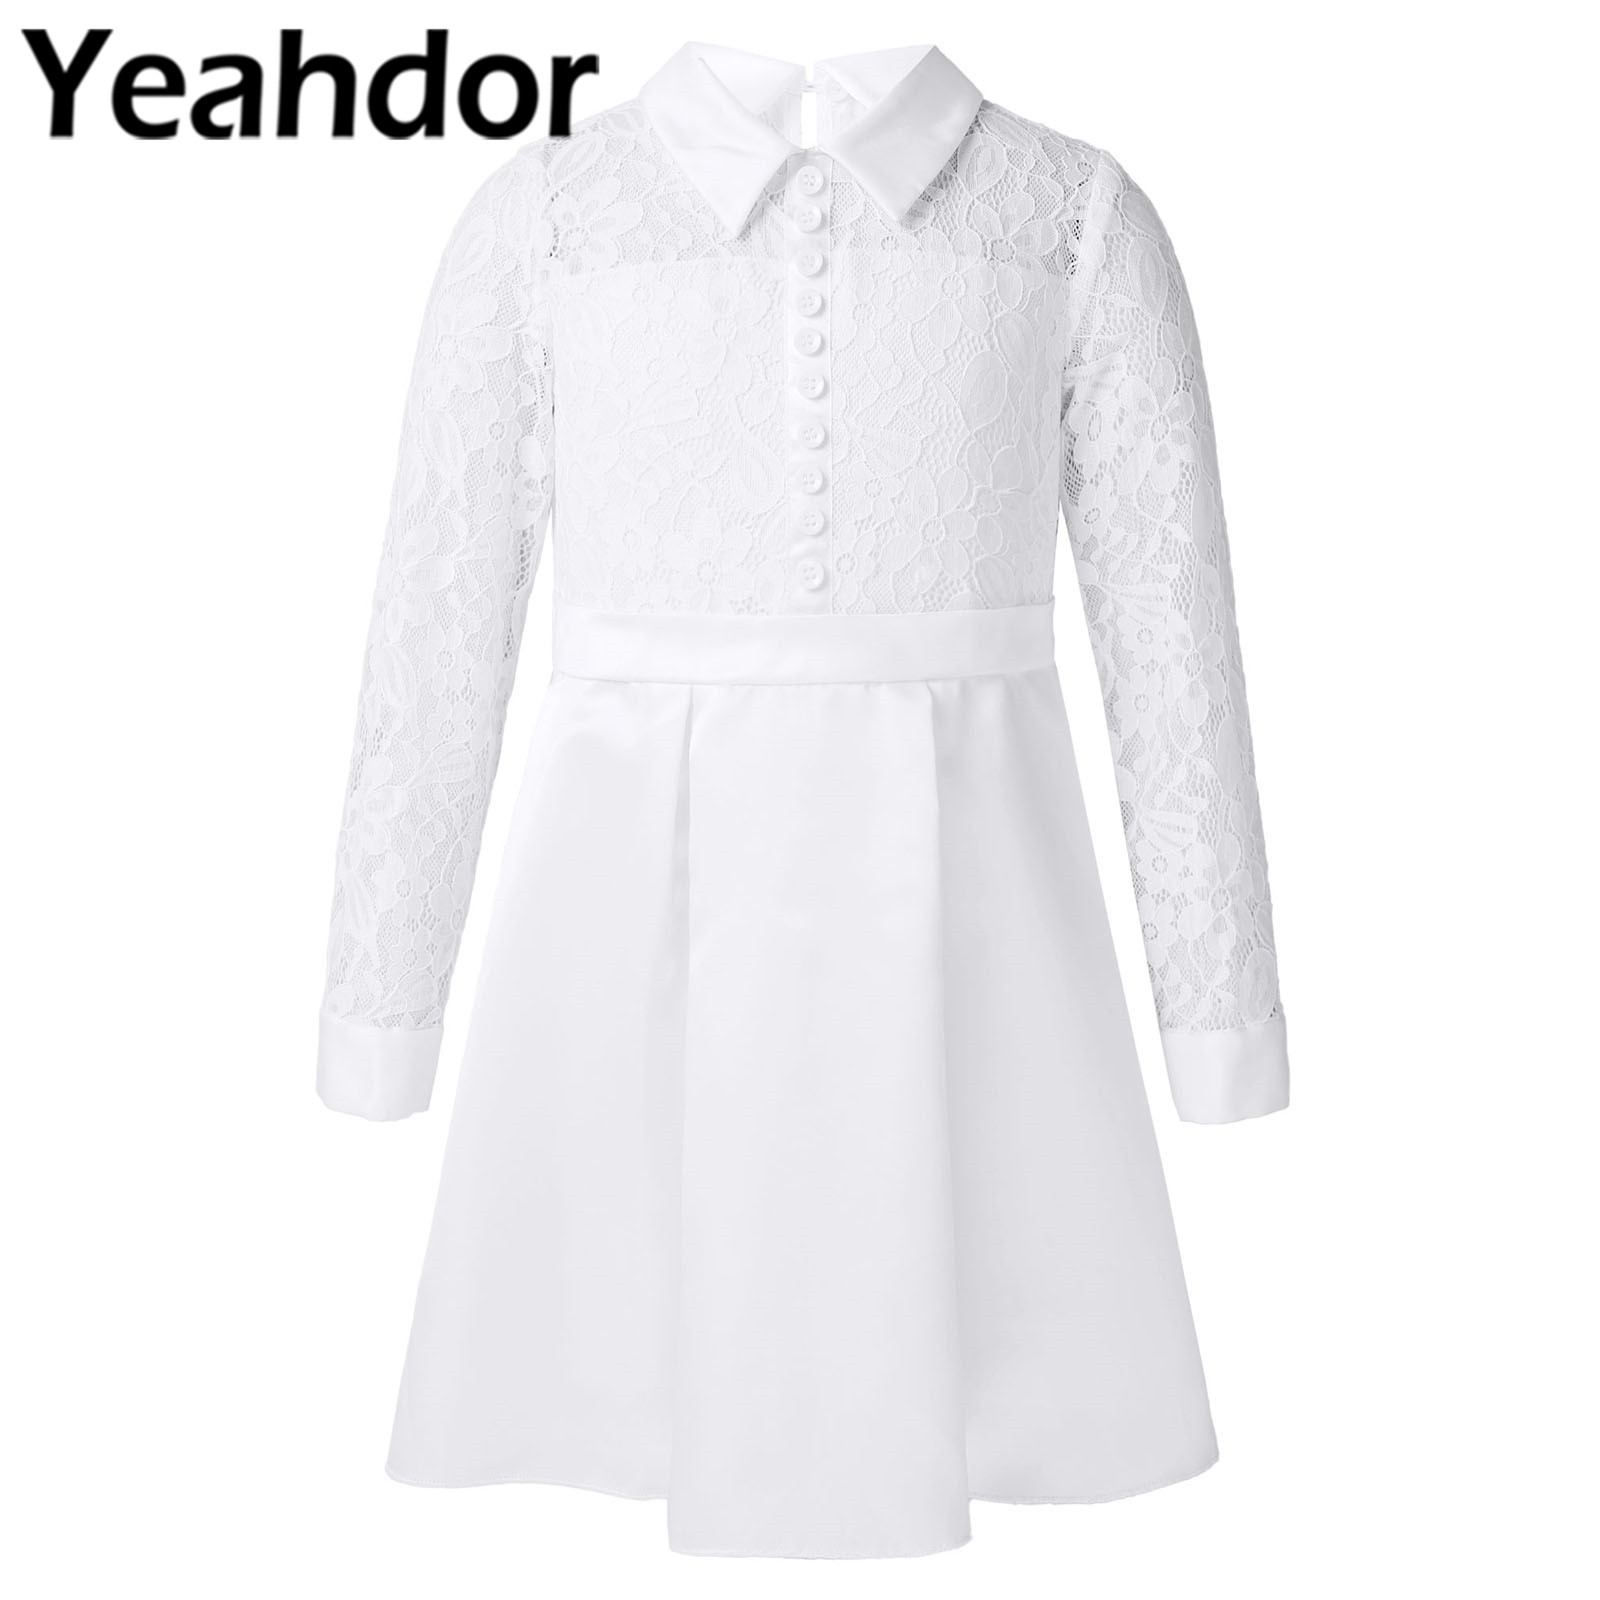 Kids Dresses for Girls Long Sleeve Lace Flower Girl Dresses Princess Dress Paty Gown Girl's Wedding Party Dress Bridesmaid